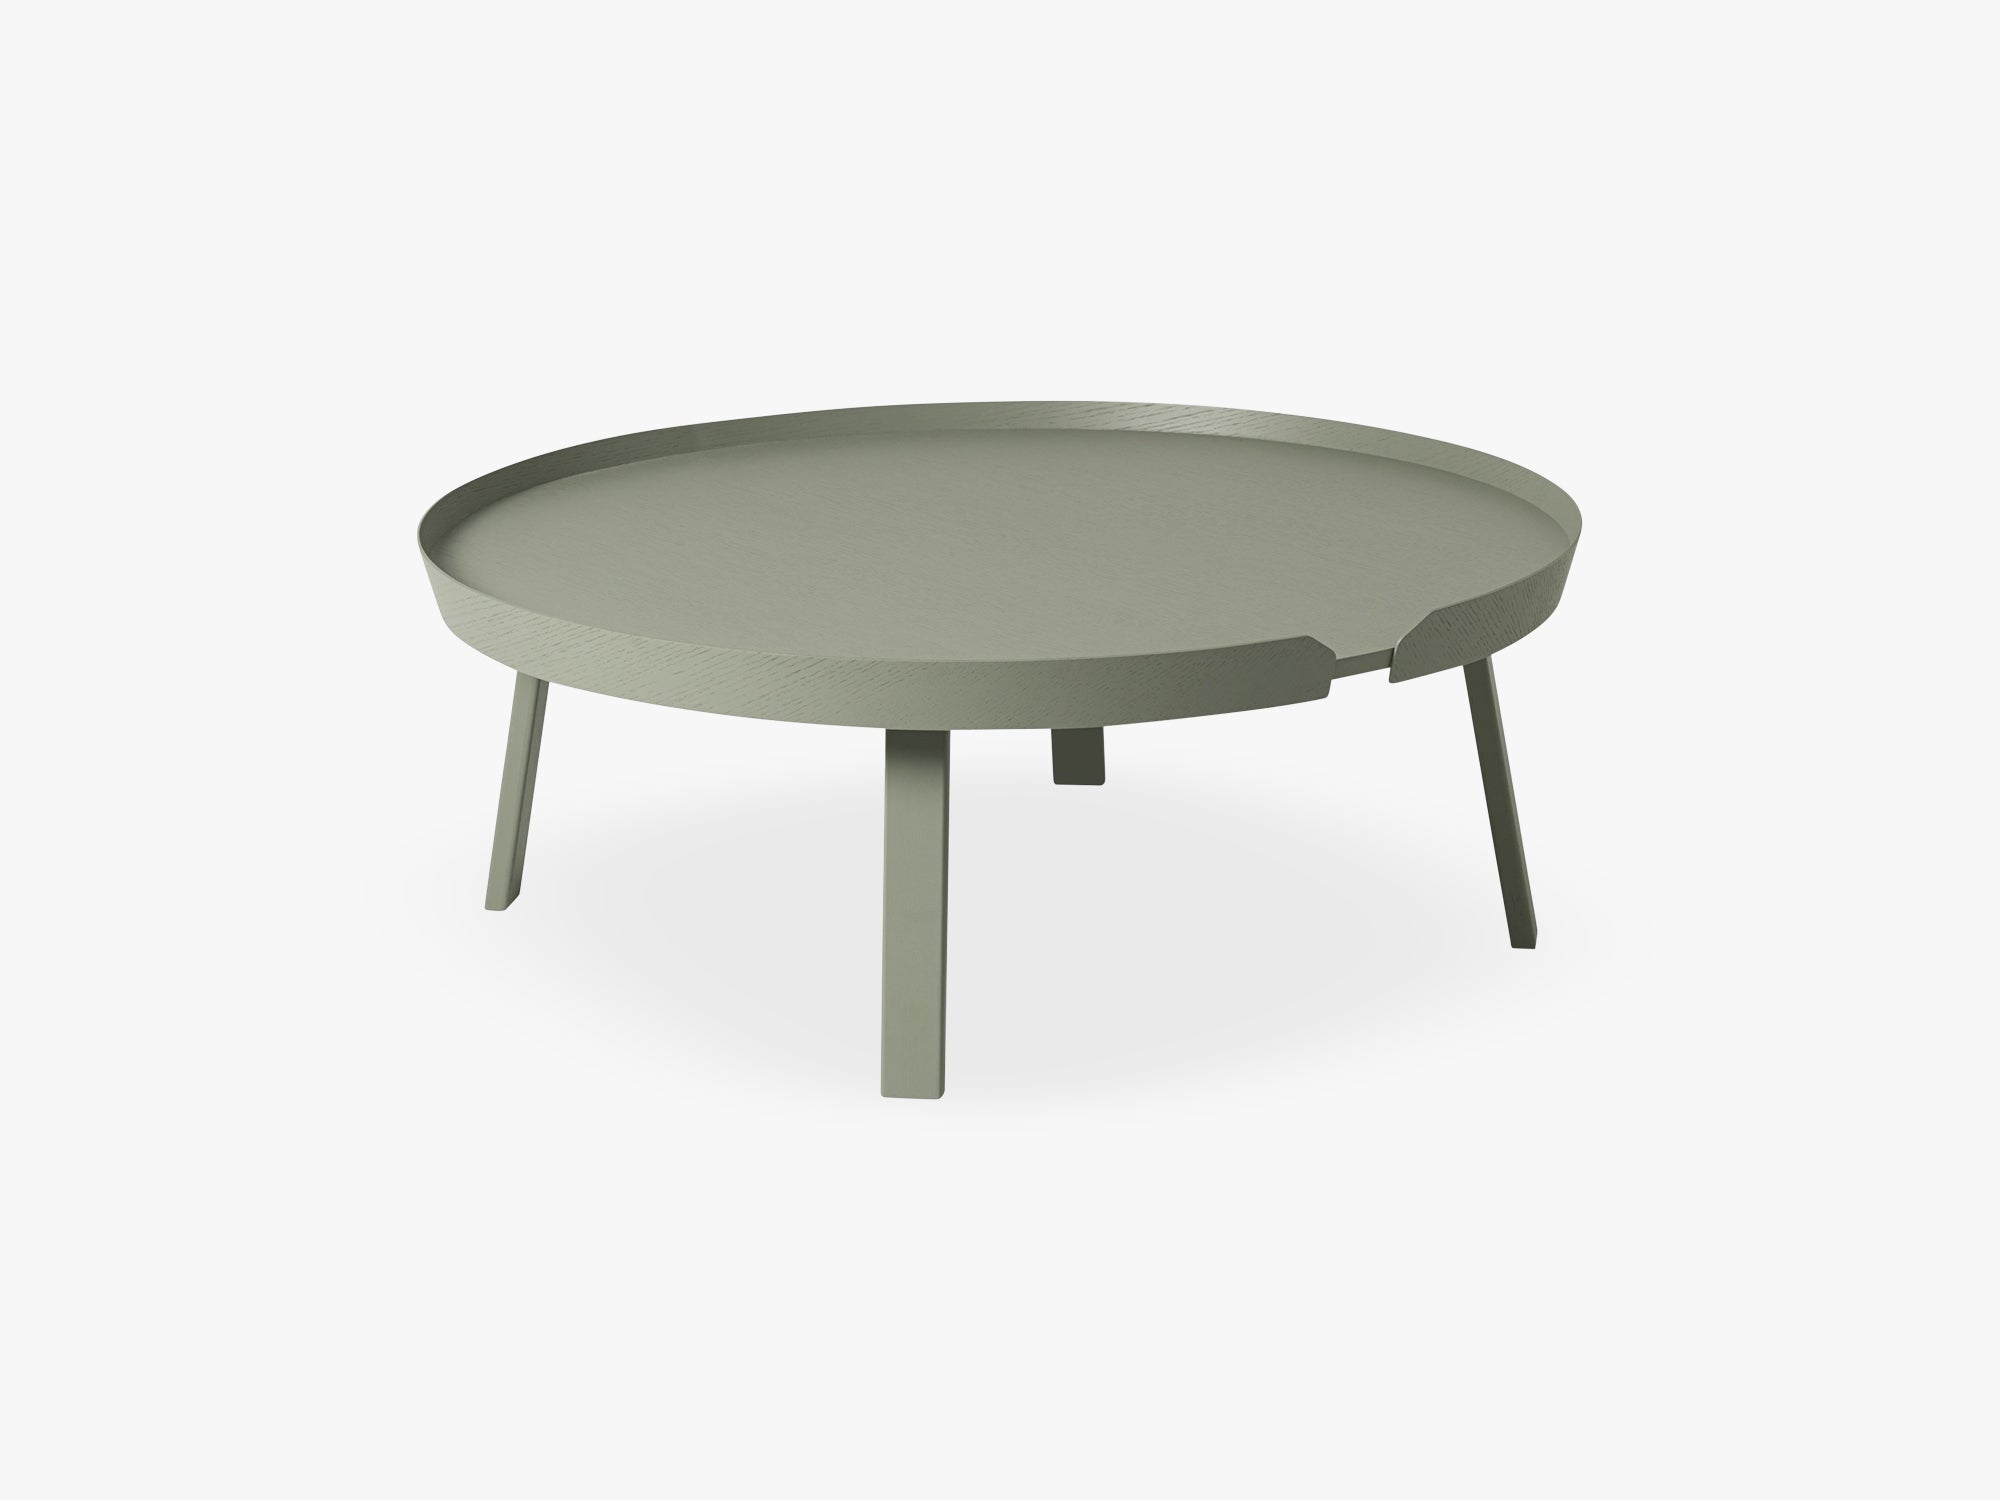 Around Coffee Table - Xl - Extra Large, Dusty Green fra Muuto